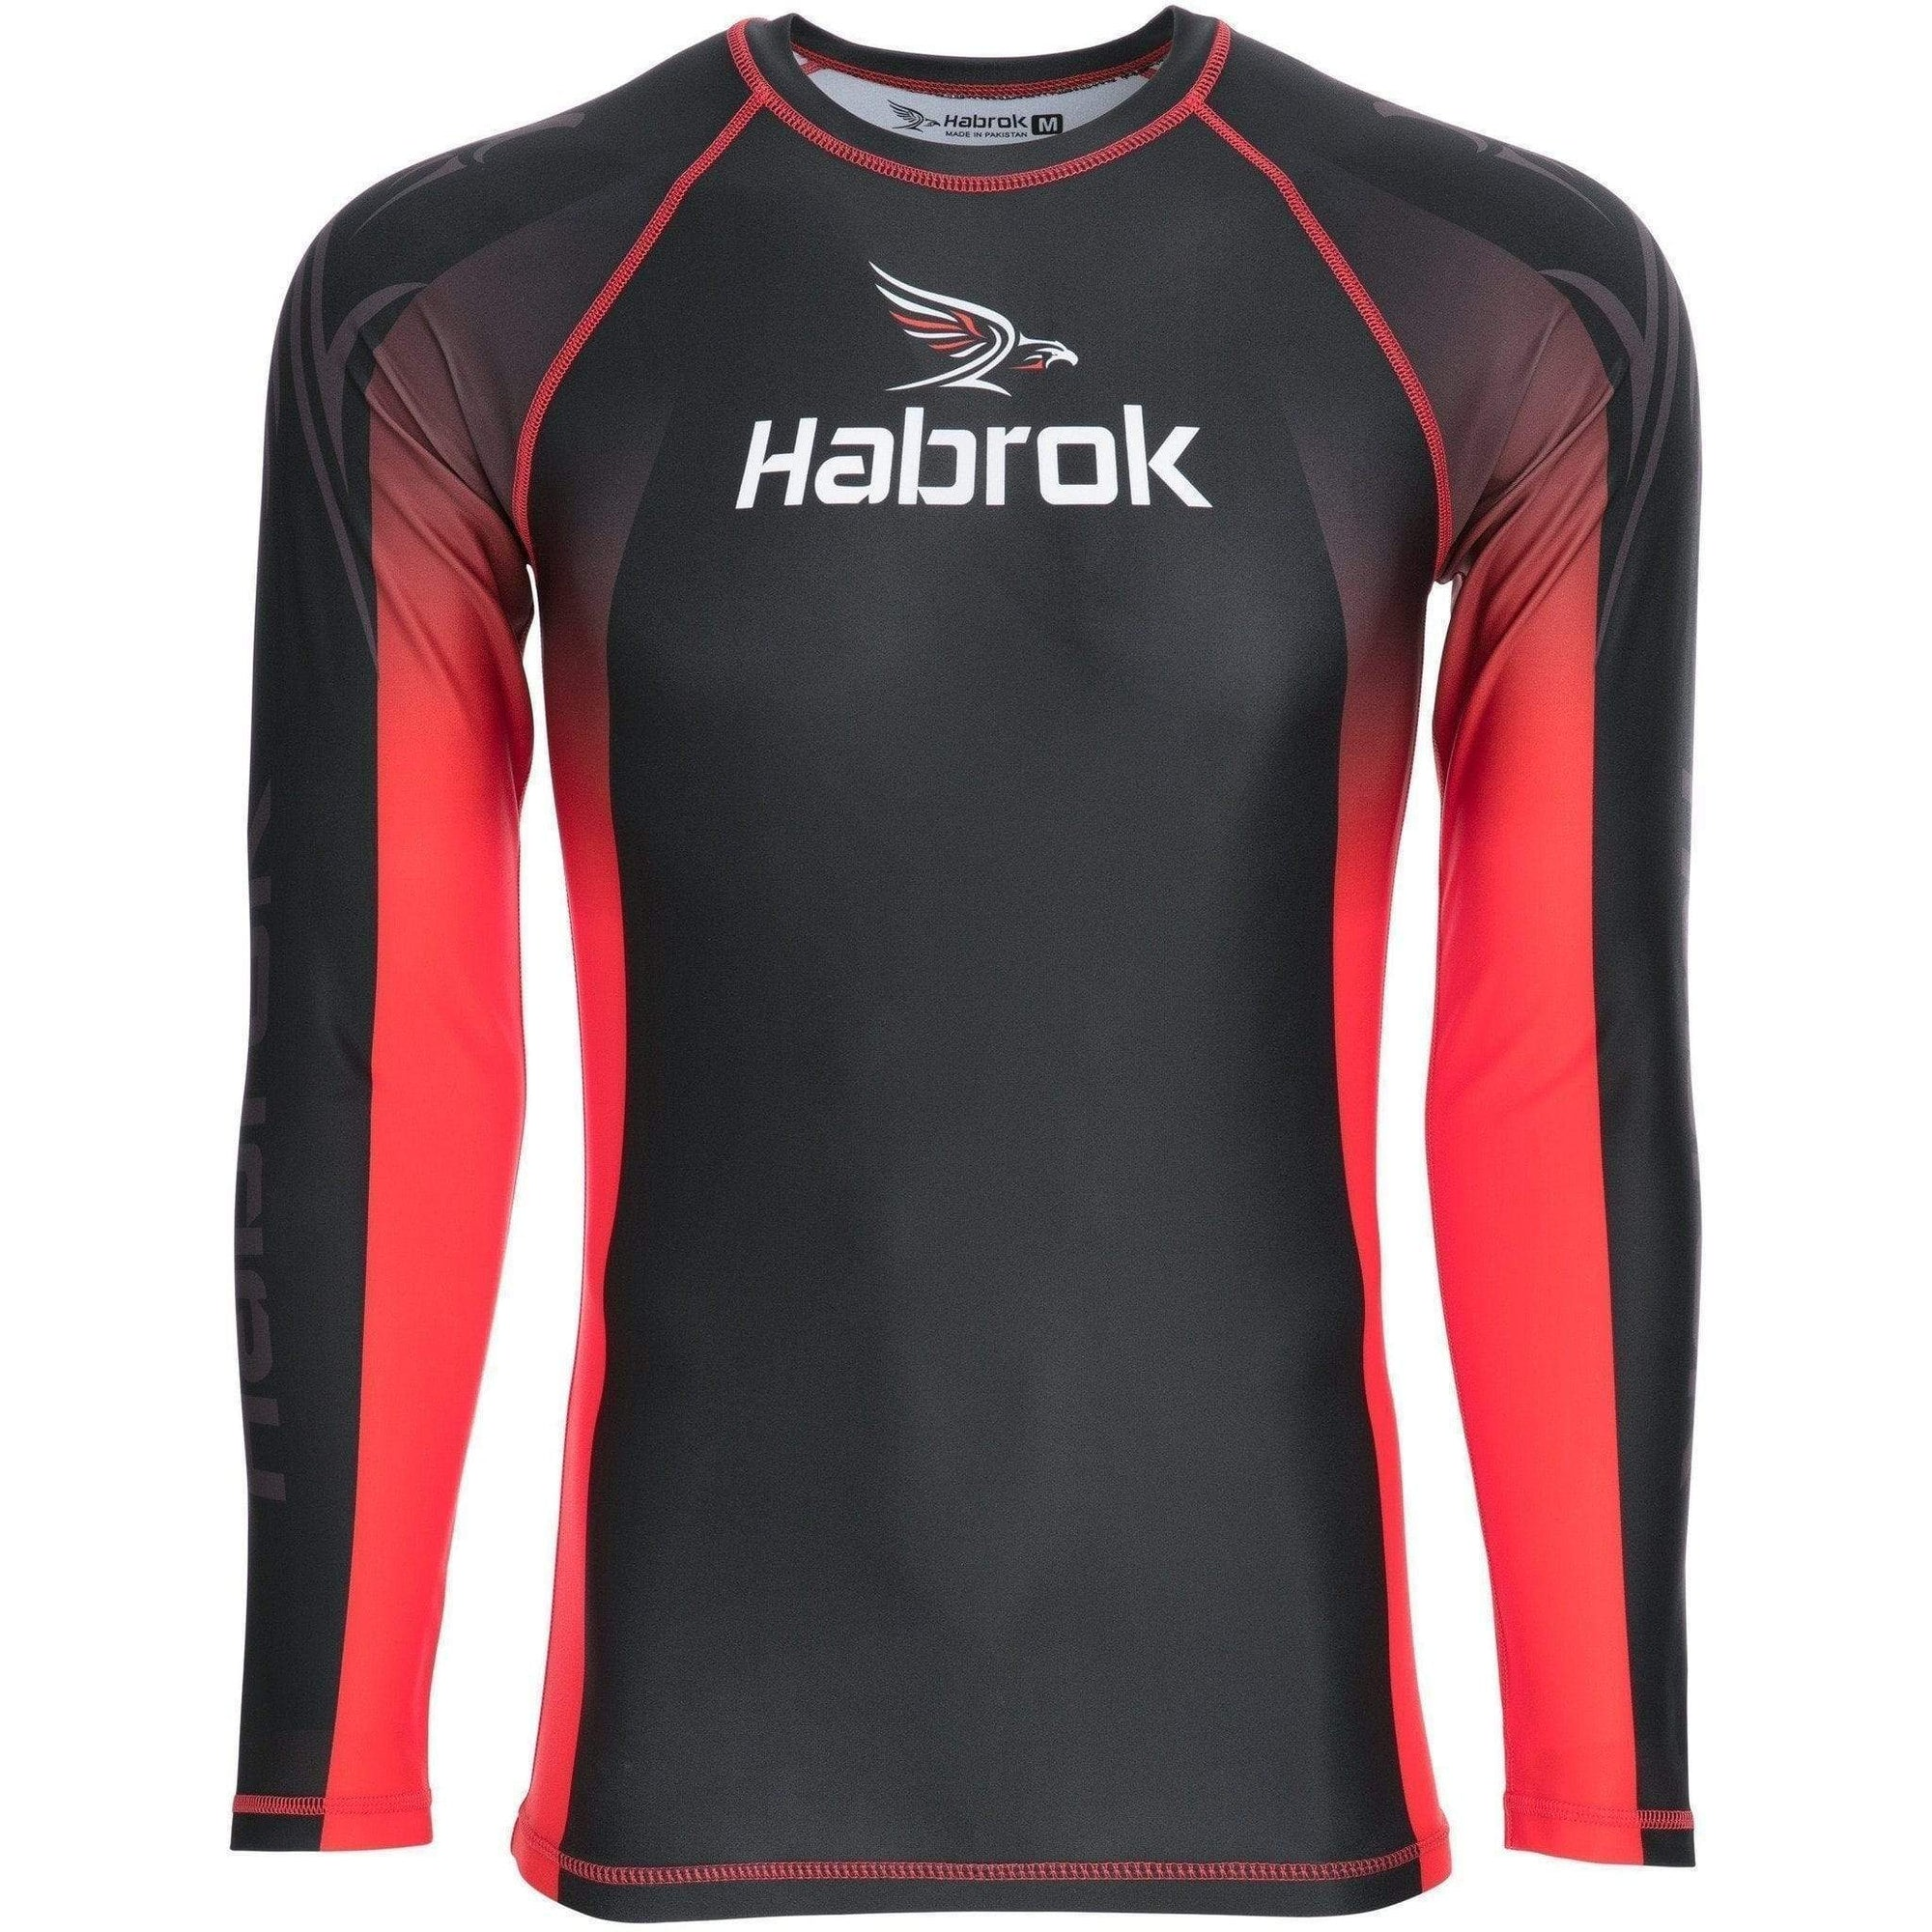 Habrok Rash Guard S / BLACK Elite Rash Guard 680334796505